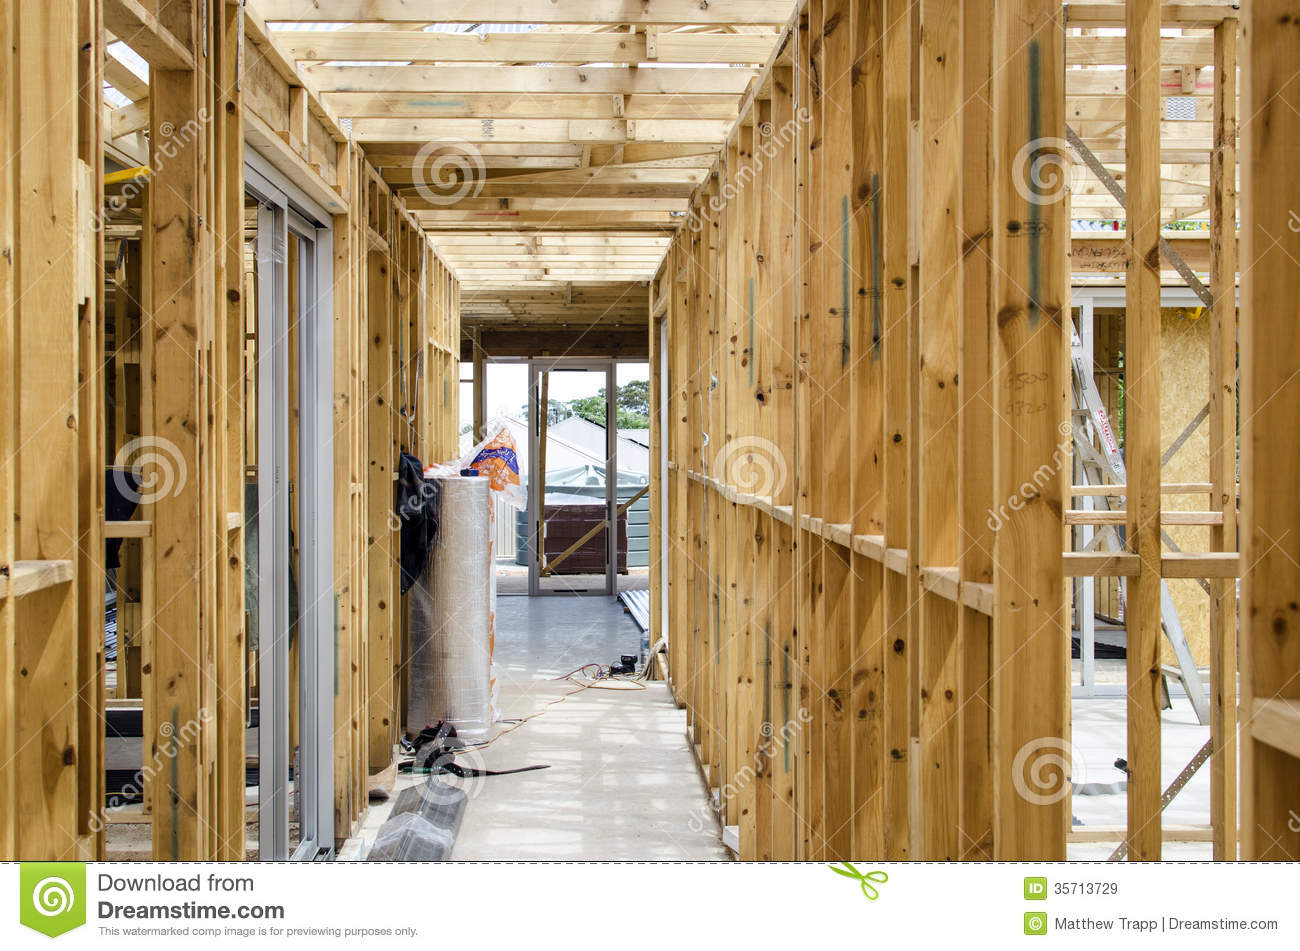 Wooden Frame Of A House Under Construction Stock Image - Image of ...